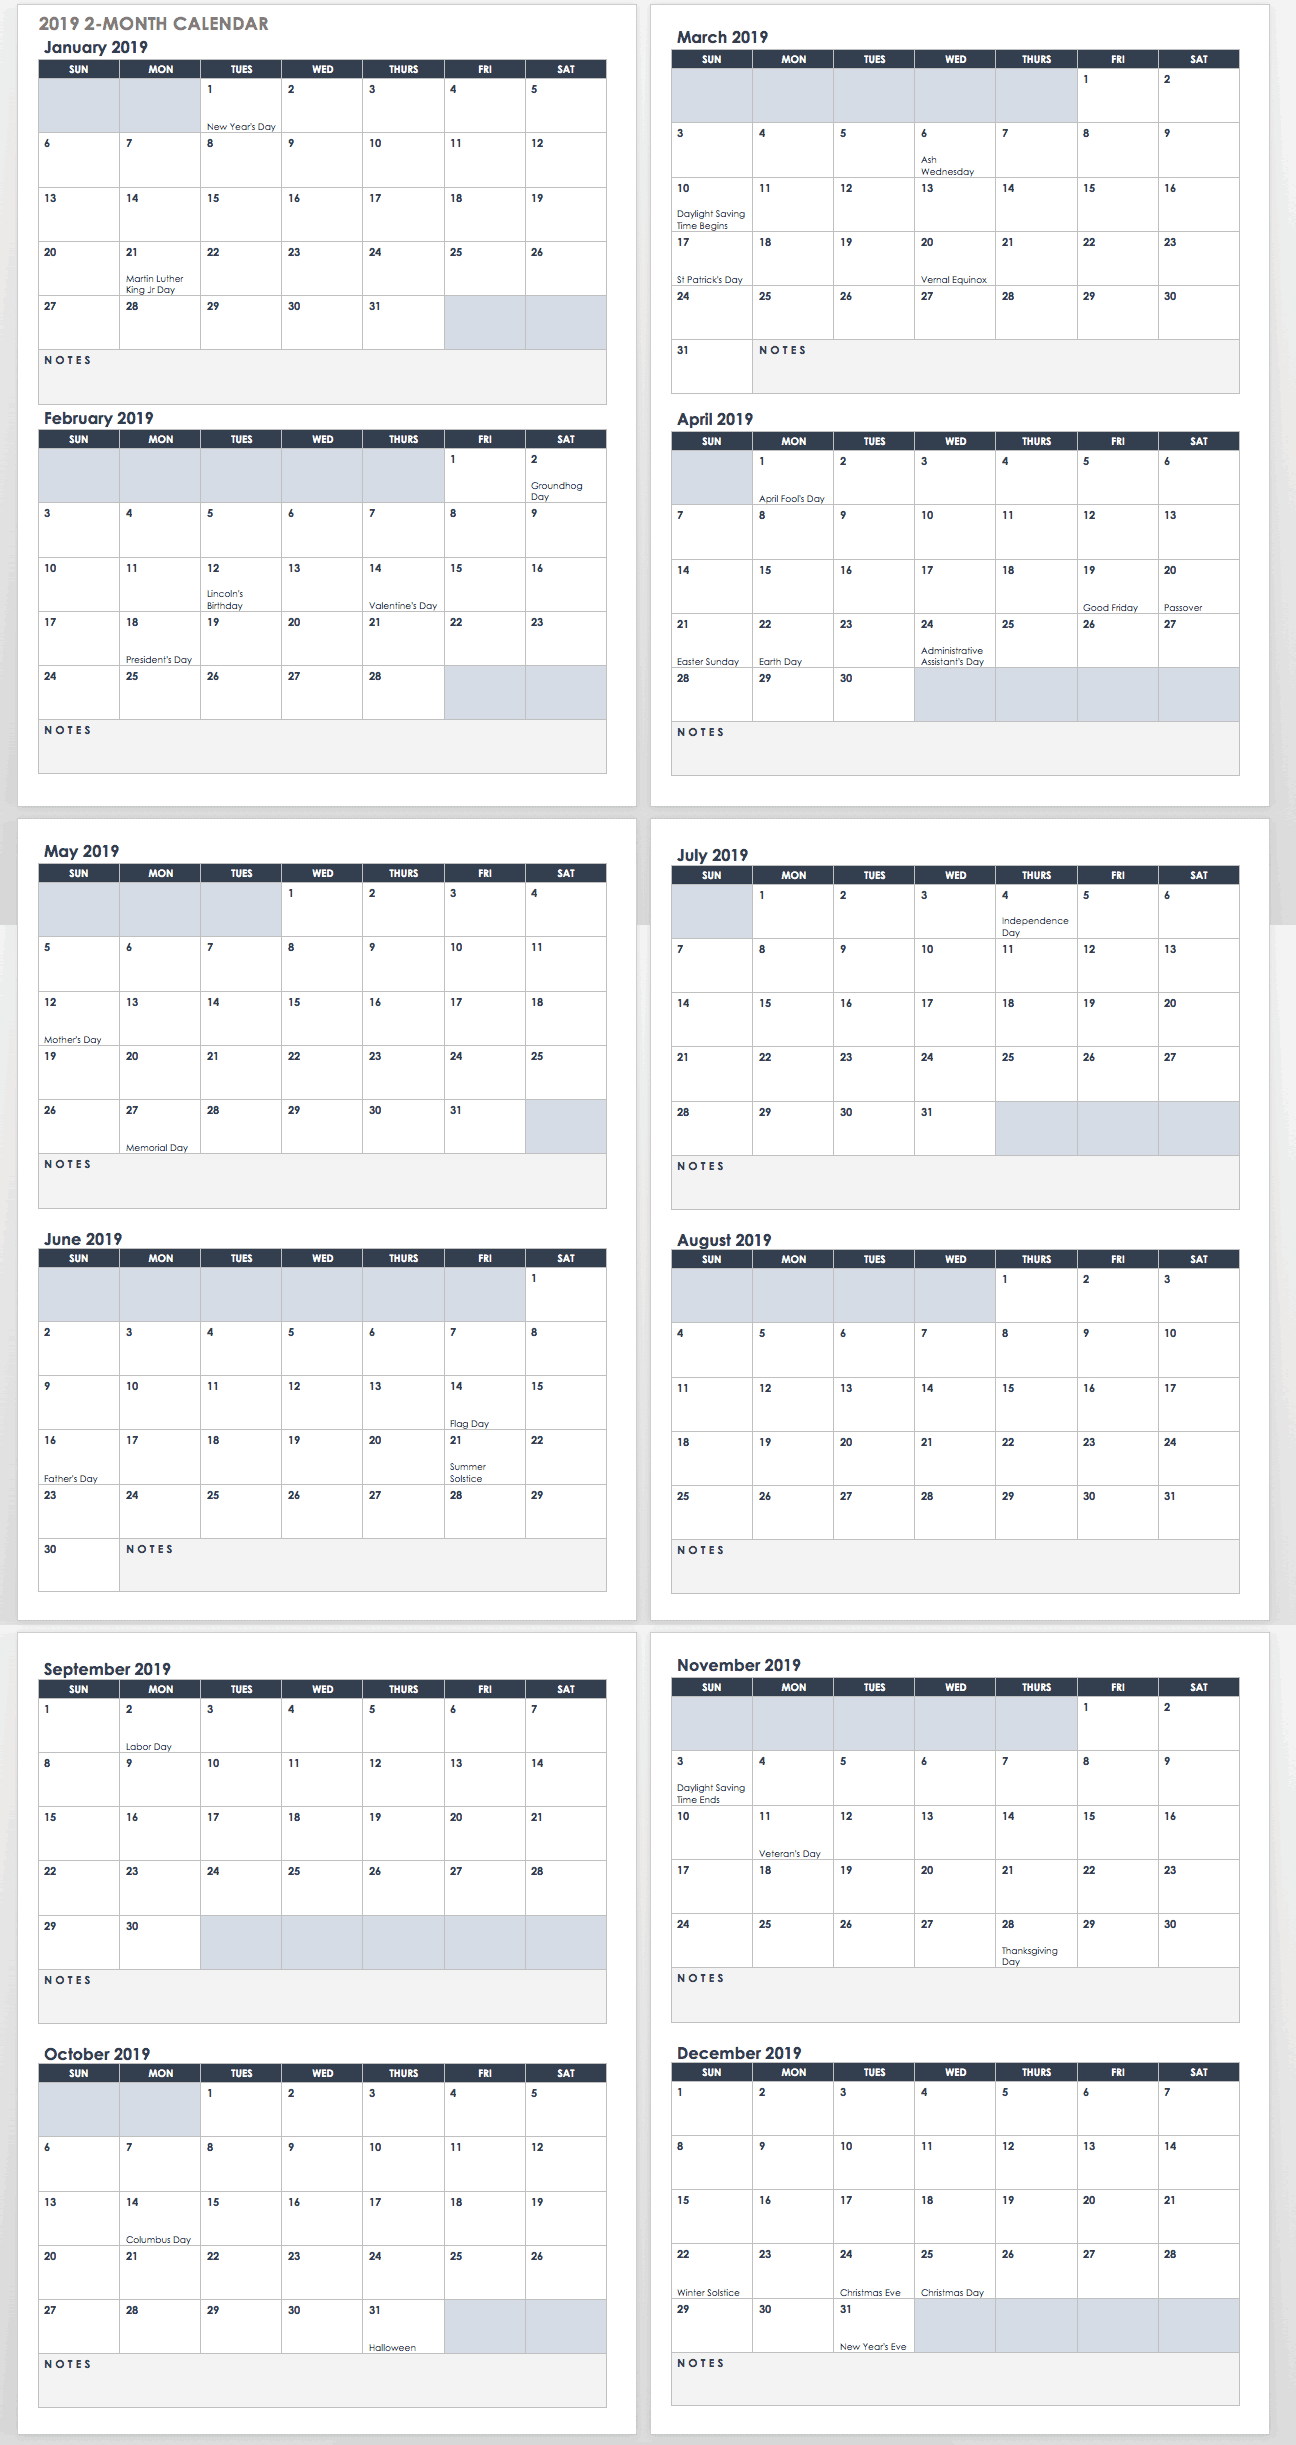 2019 2 month calendar template word